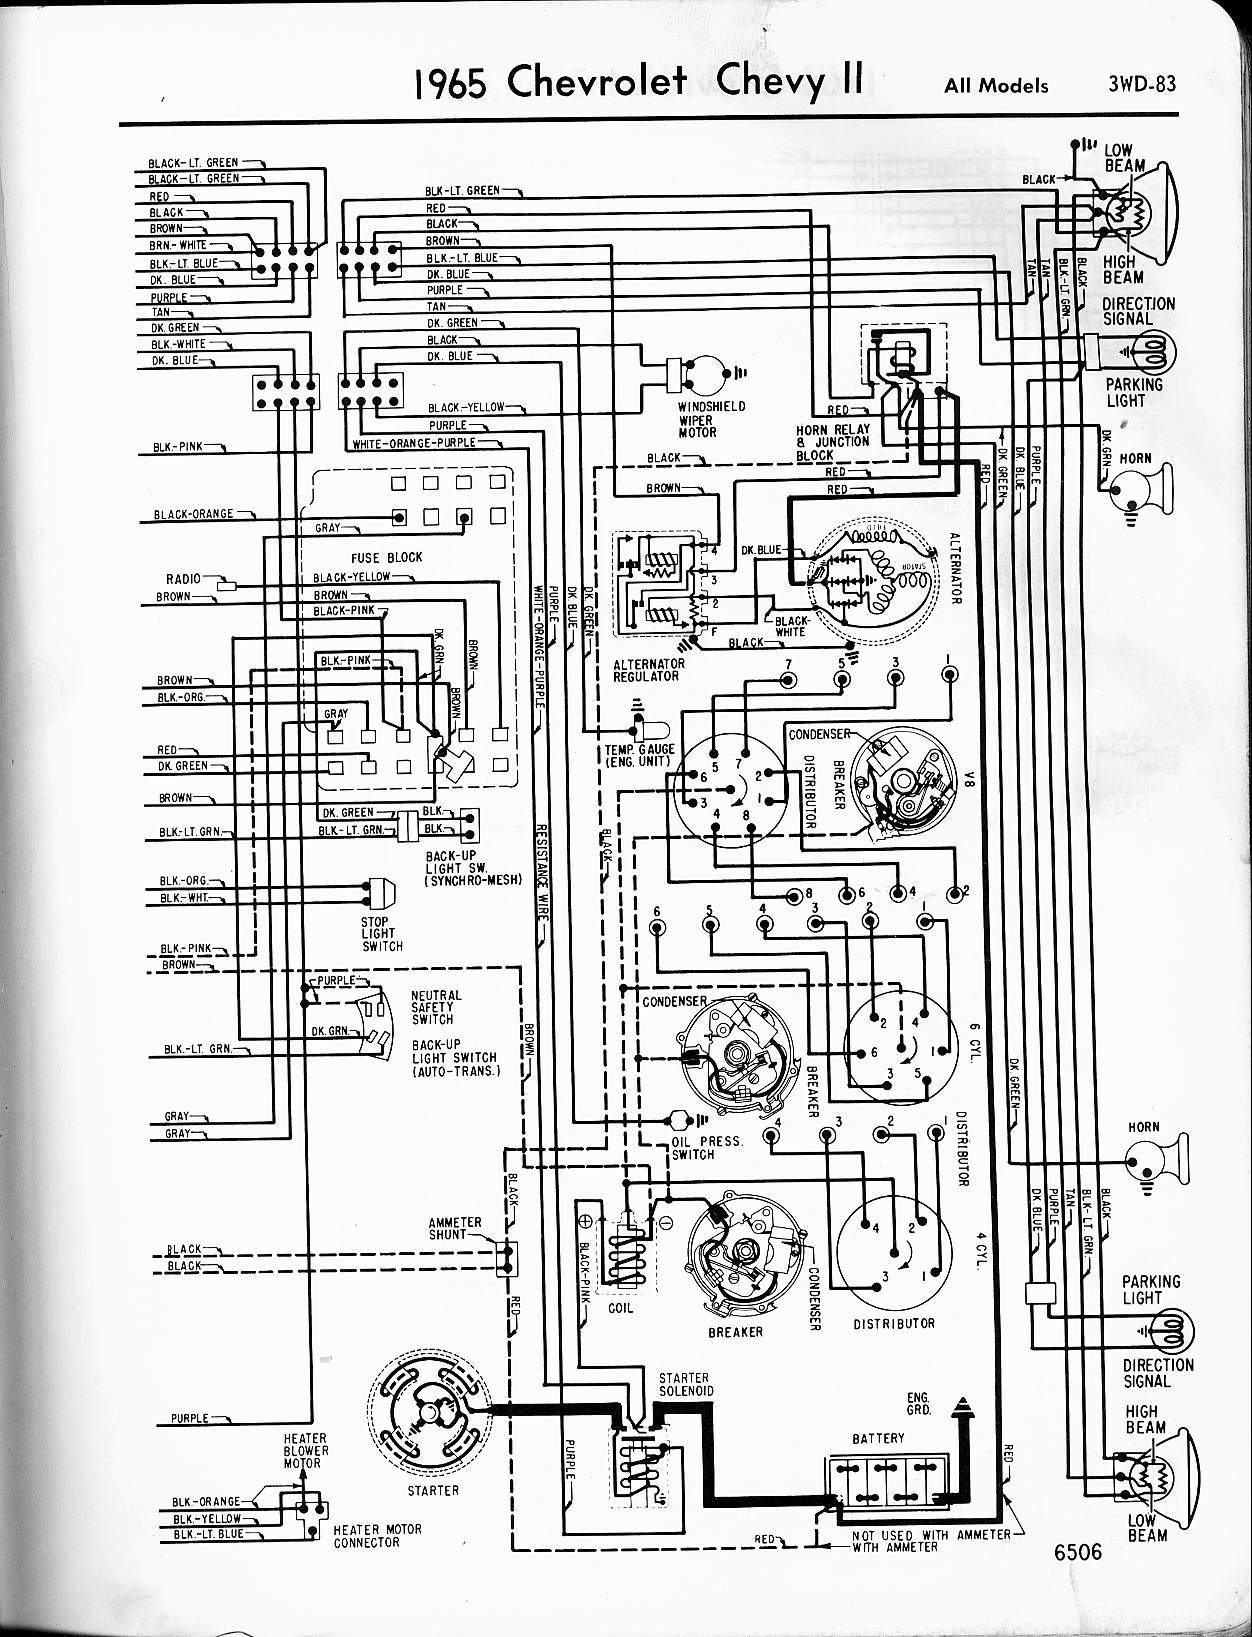 hight resolution of 88 ford bronco 2 headlight switch wiring diagram wiring library1965 chevy ii wiring diagram figure a